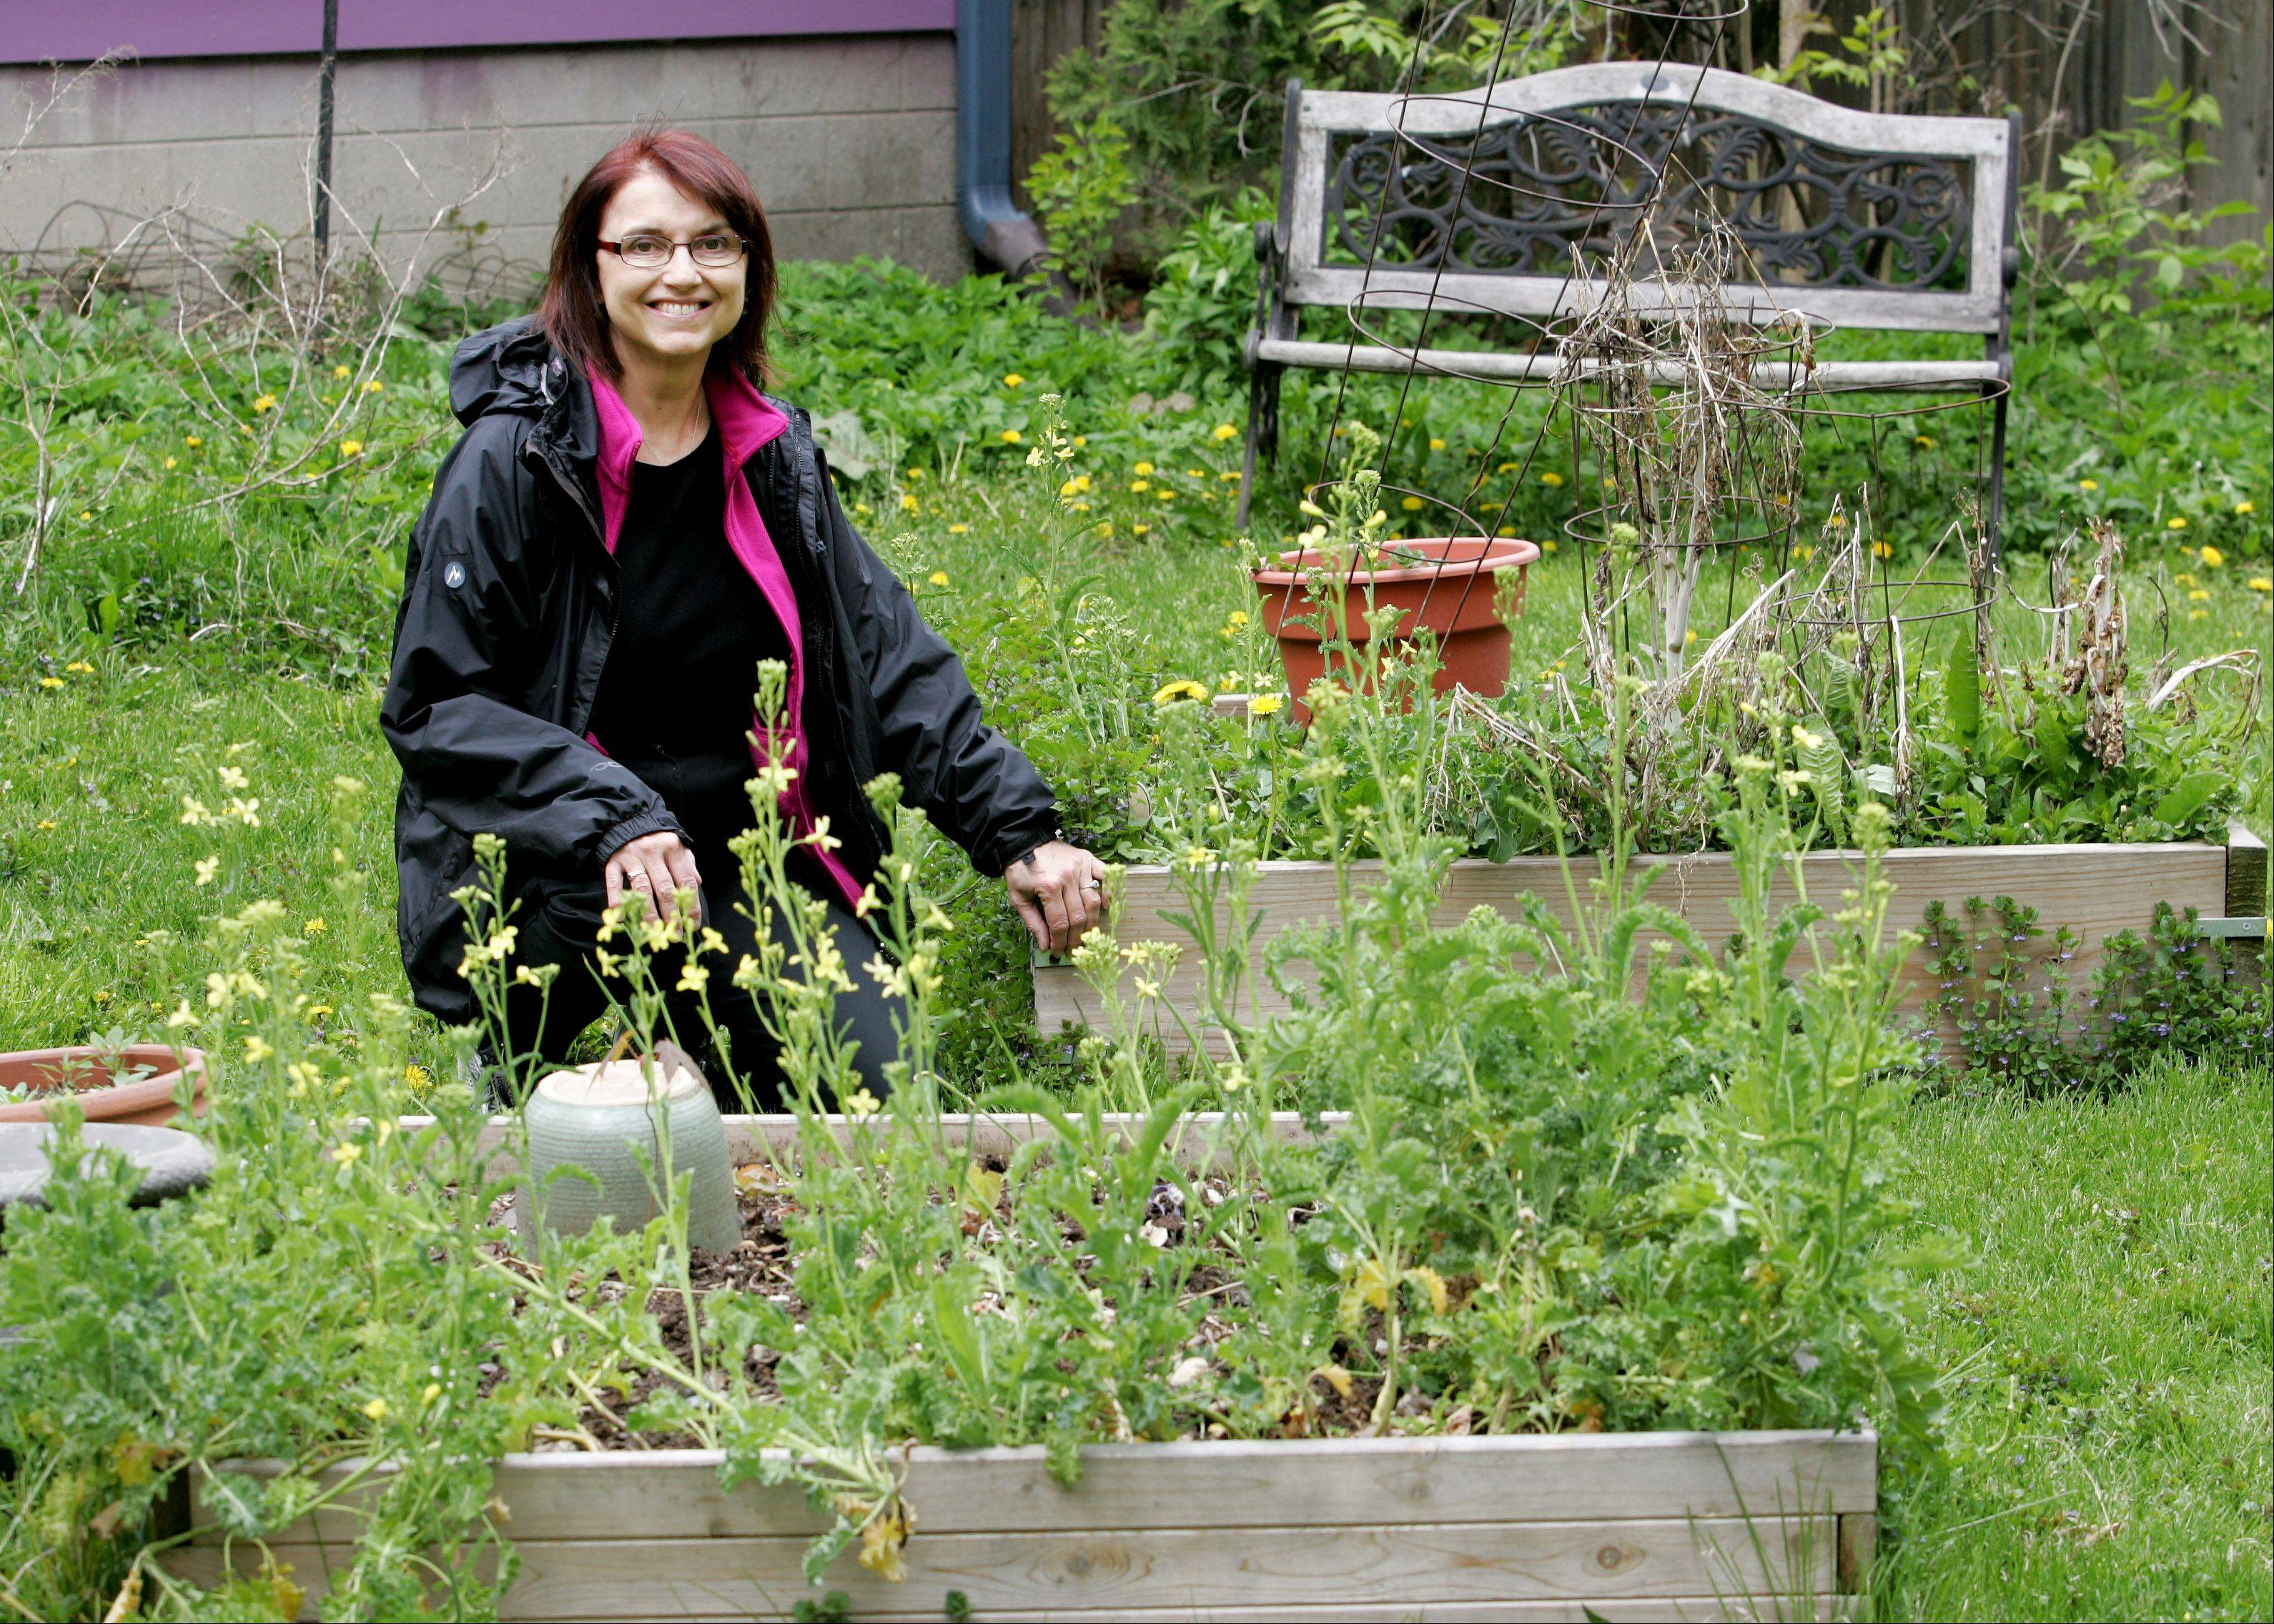 Gardening in her backyard and cooling her home with window air conditioners instead of a central system are some of the ways Mavis Bates of Aurora shows her passion for conservation. Bates is the founder of Aurora Green Lights and Aurora Green Fest.